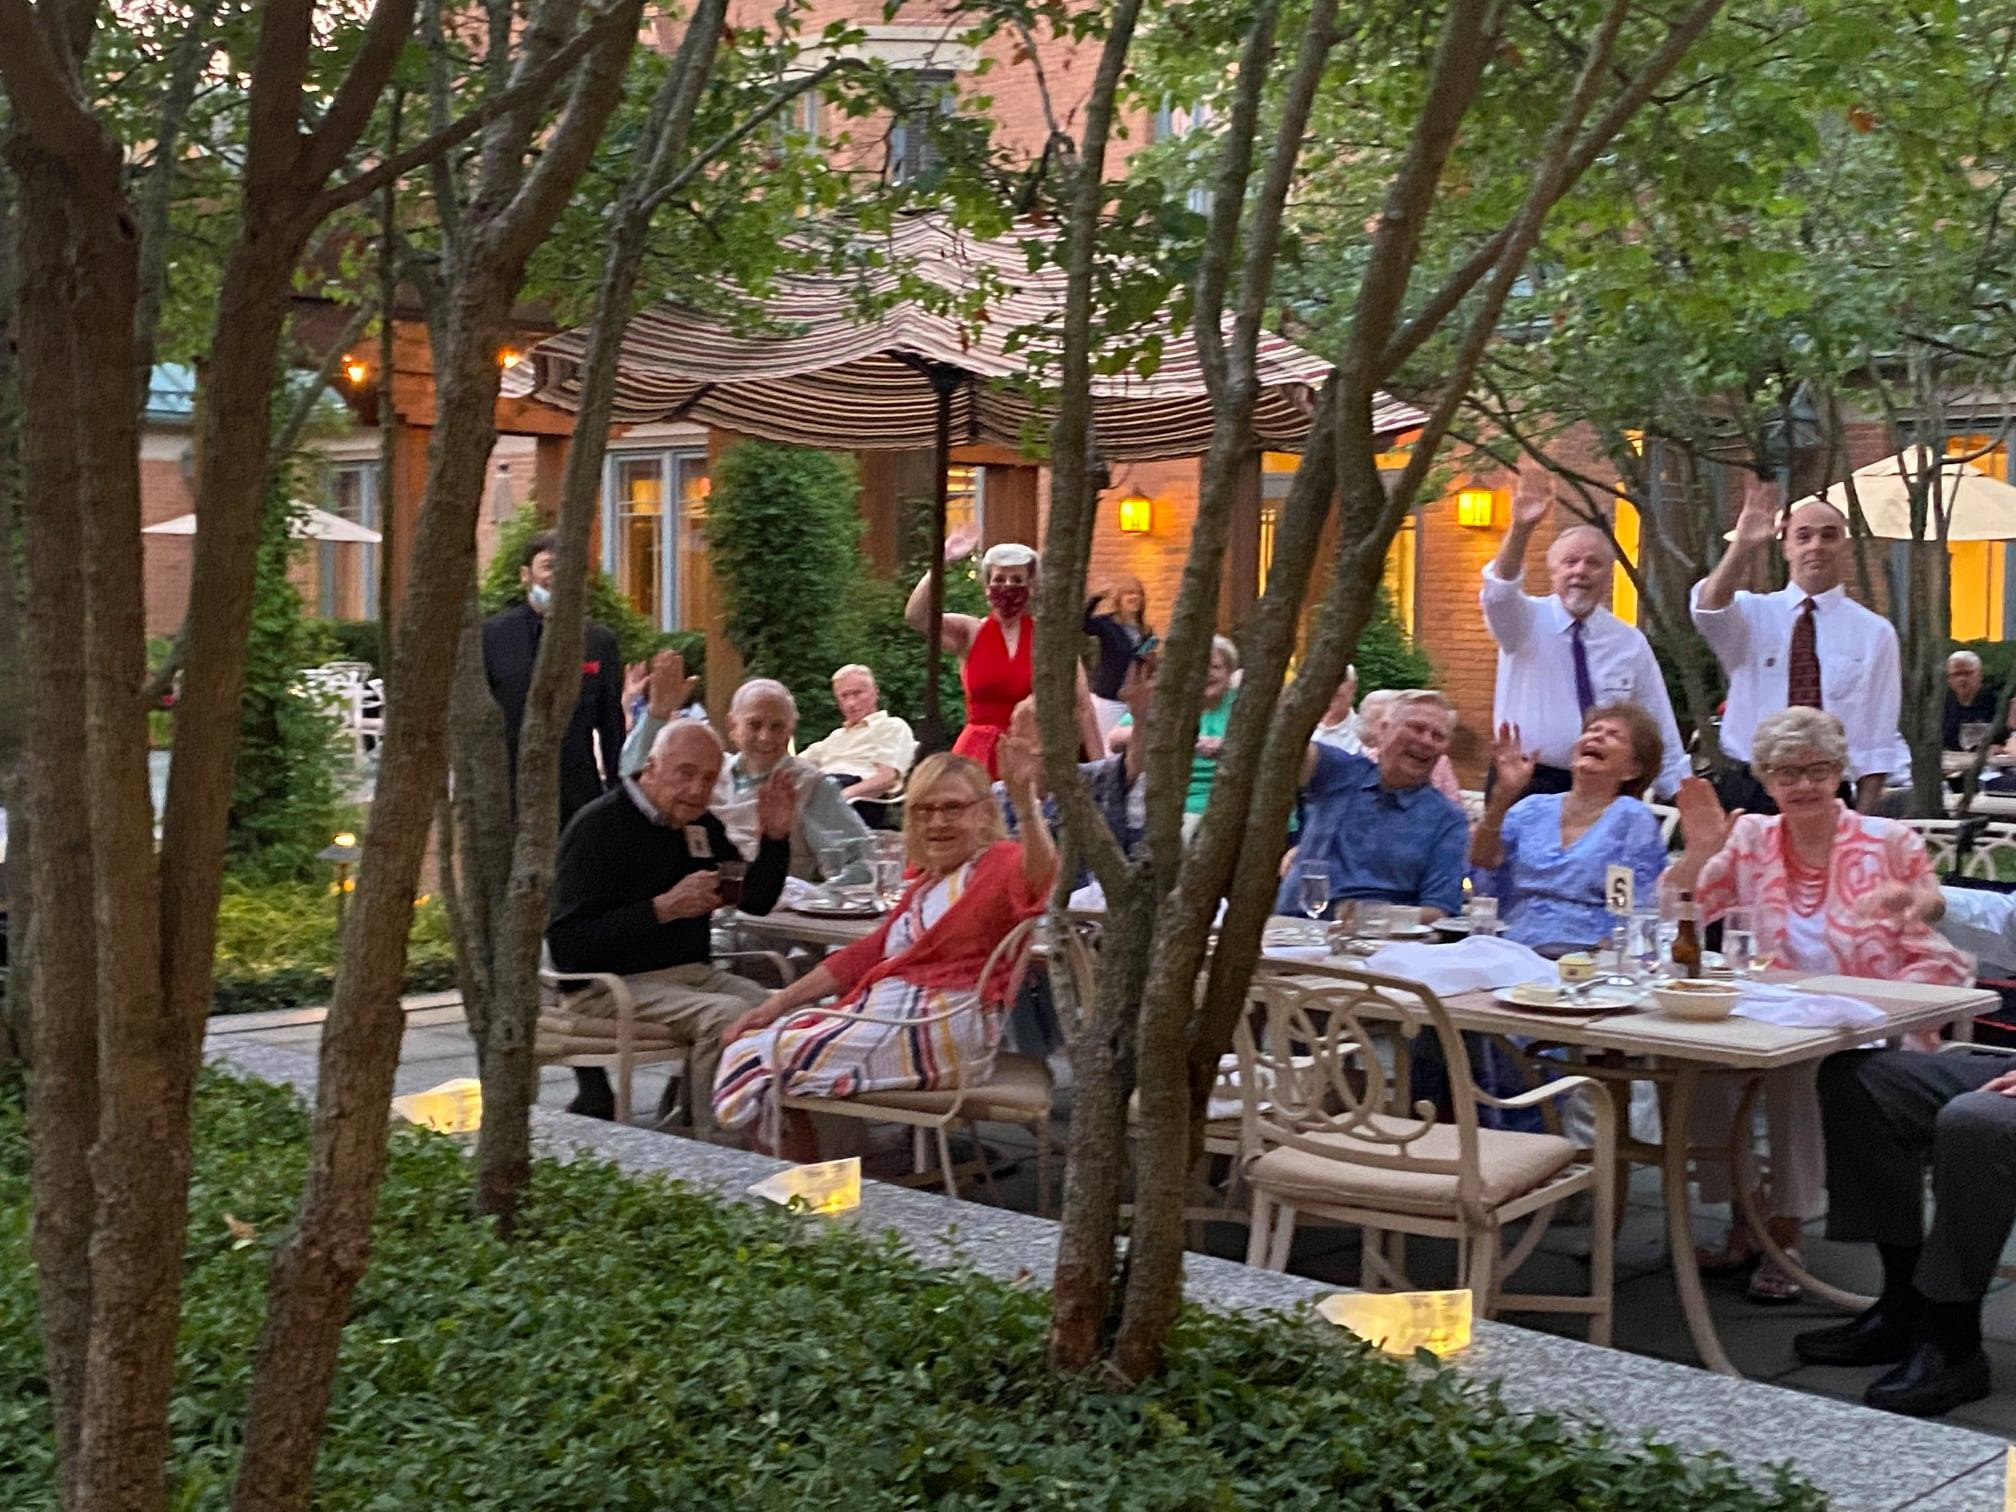 Group of Garlands Members enjoying an outside dining event